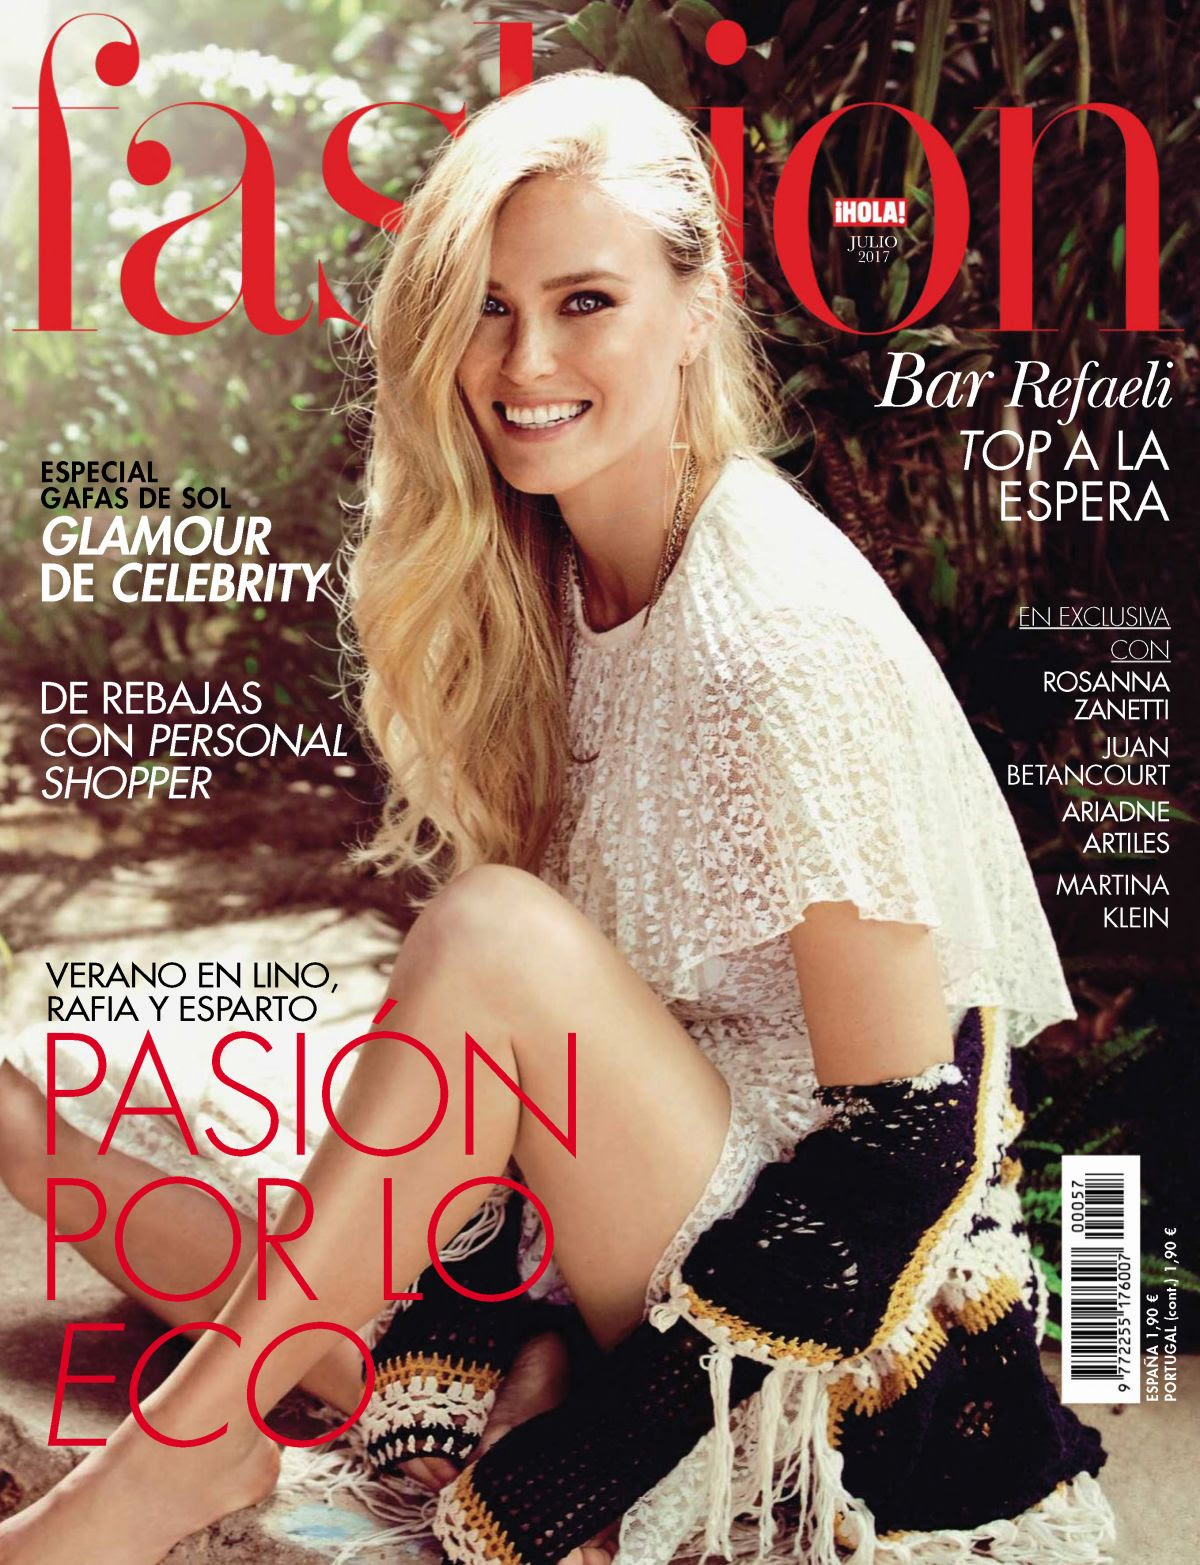 BAR REFAELI in Ihola Fashion Magazine, Spain July 2017